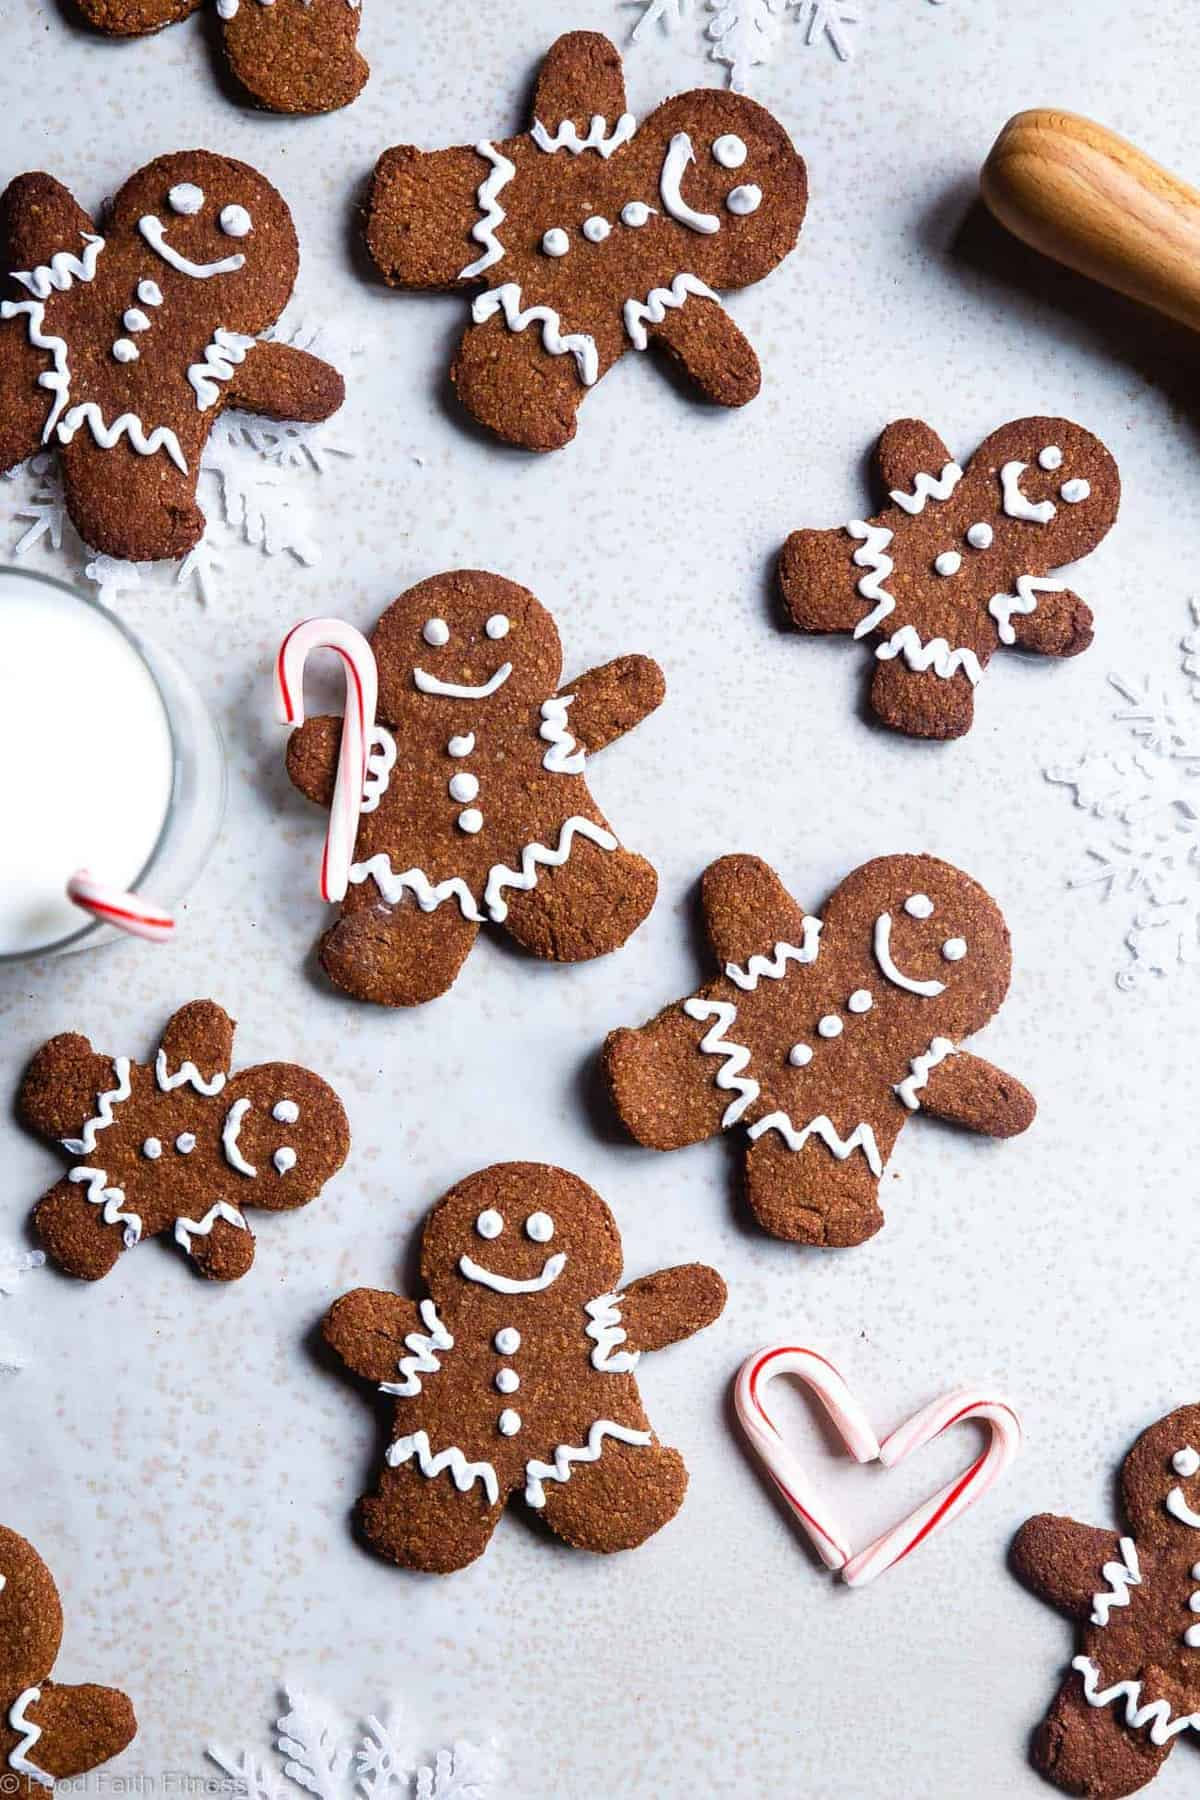 Gluten Free Paleo Healthy Gingerbread Cookies - These gingerbread cookies are perfectly spicy, sweet and crispy! An easy, delicious holiday cookie that no one will know are healthy and gluten/grain/dairy/refined sugar free! | #Foodfaithfitness |